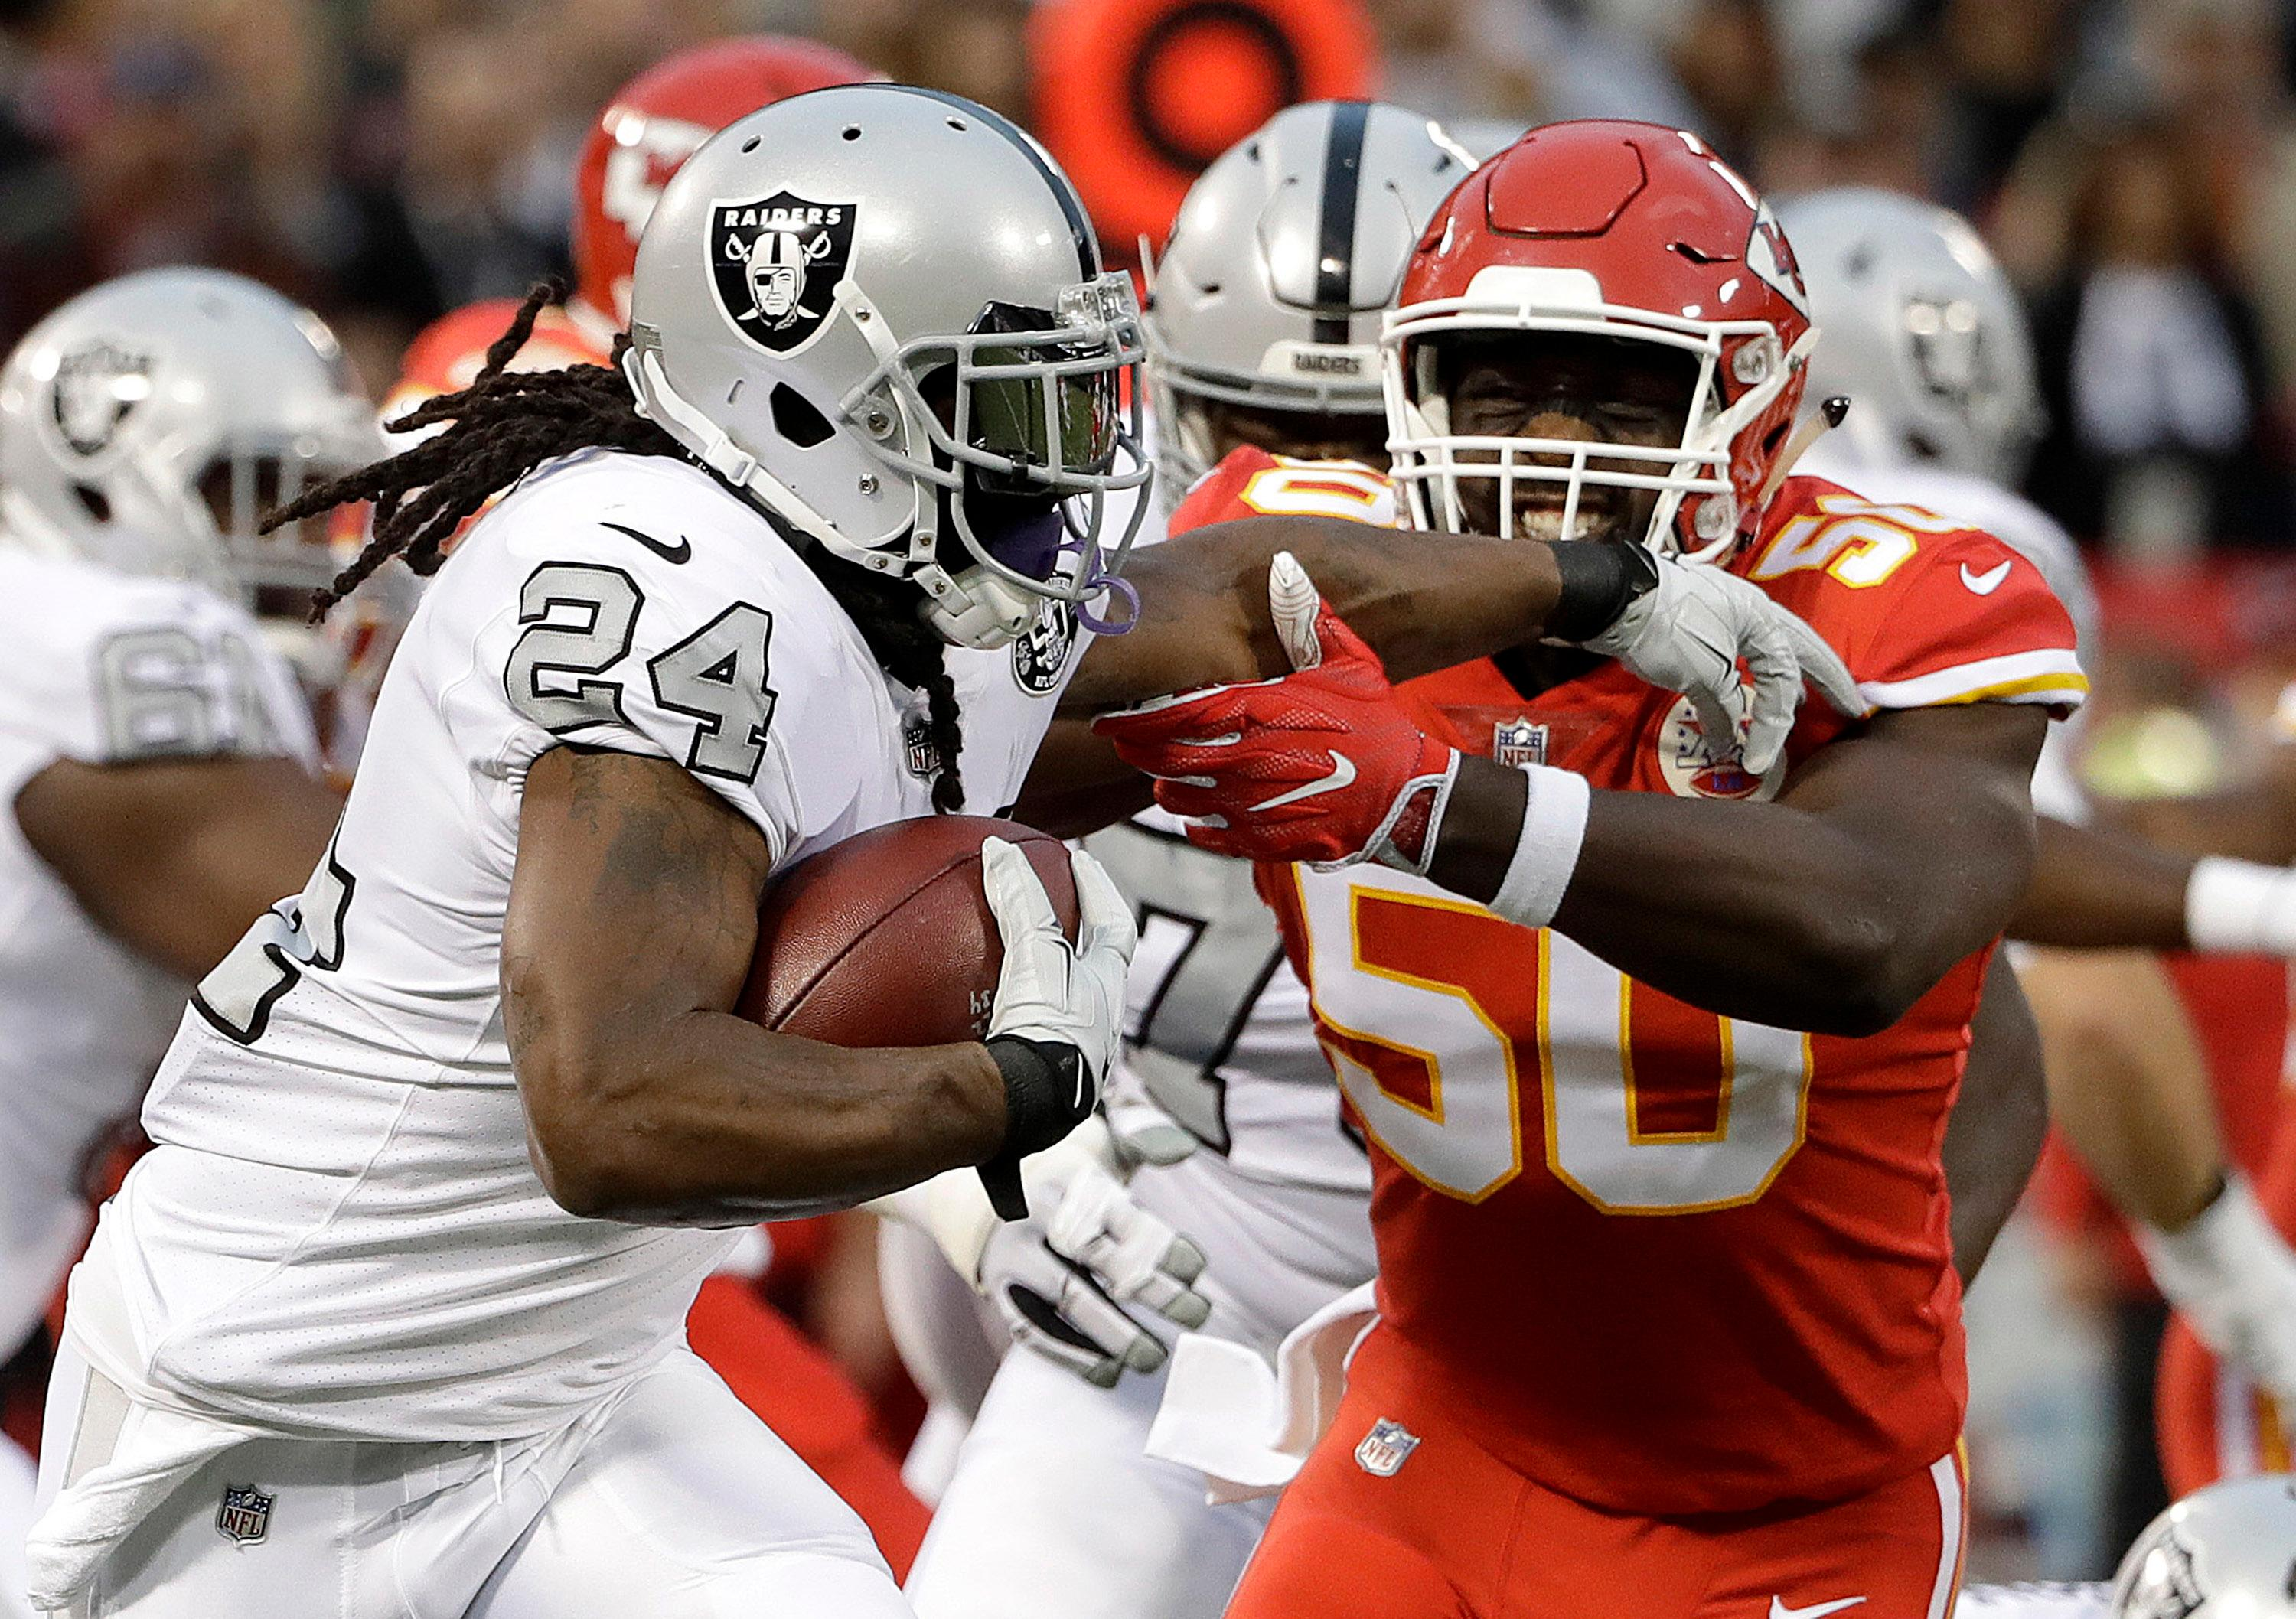 Oakland Raiders running back Marshawn Lynch (24) runs against Kansas City Chiefs outside linebacker Justin Houston (50) during the first half of an NFL football game in Oakland, Calif., Thursday, Oct. 19, 2017. (AP Photo/Marcio Jose Sanchez)